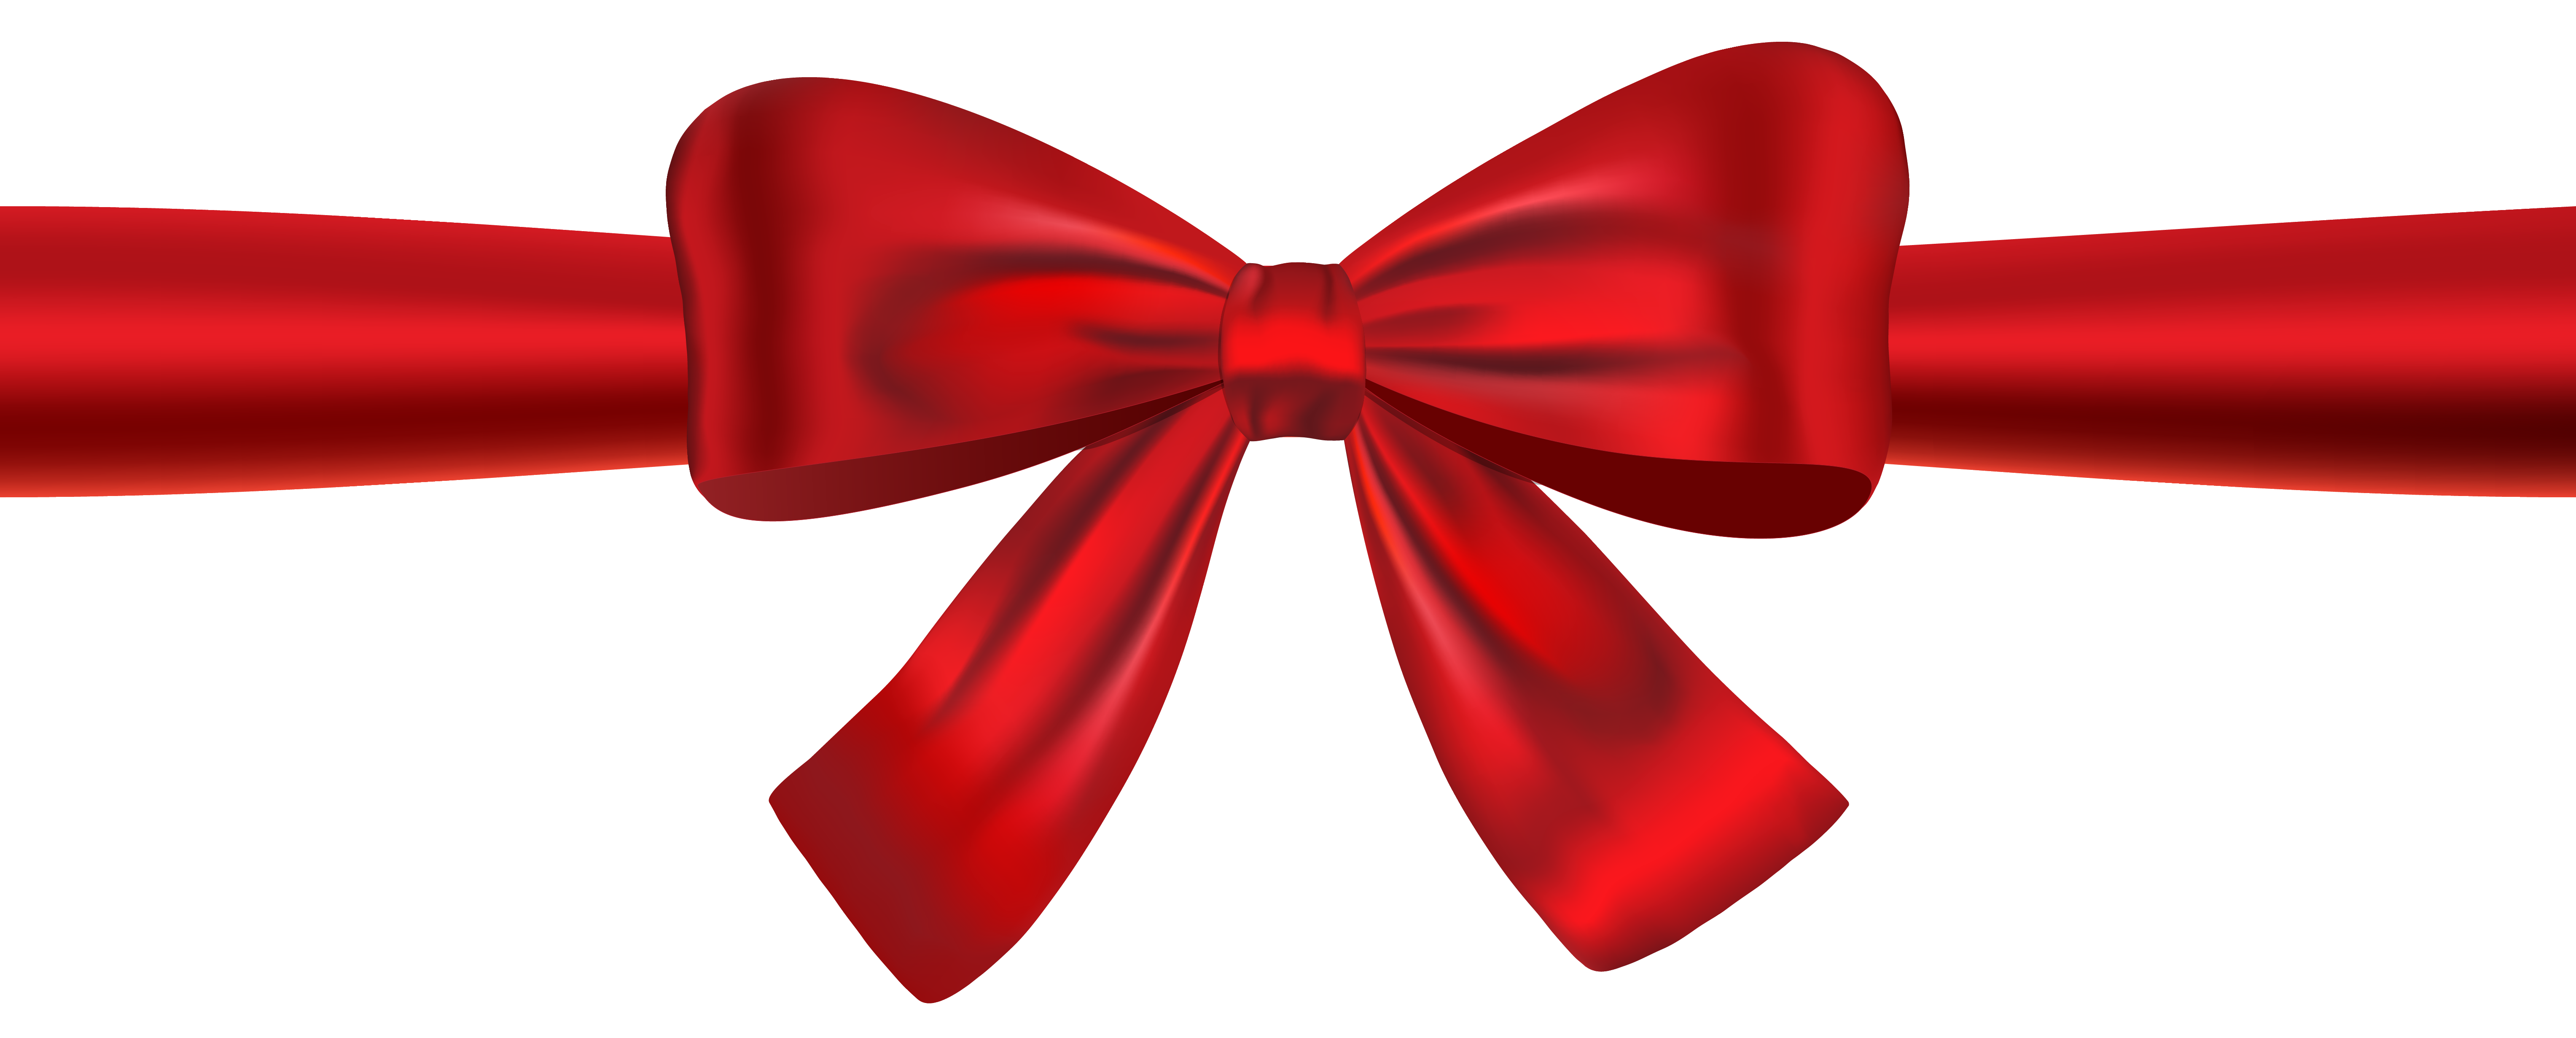 Red Ribbon And Bow Clipart .-Red ribbon and bow clipart .-14